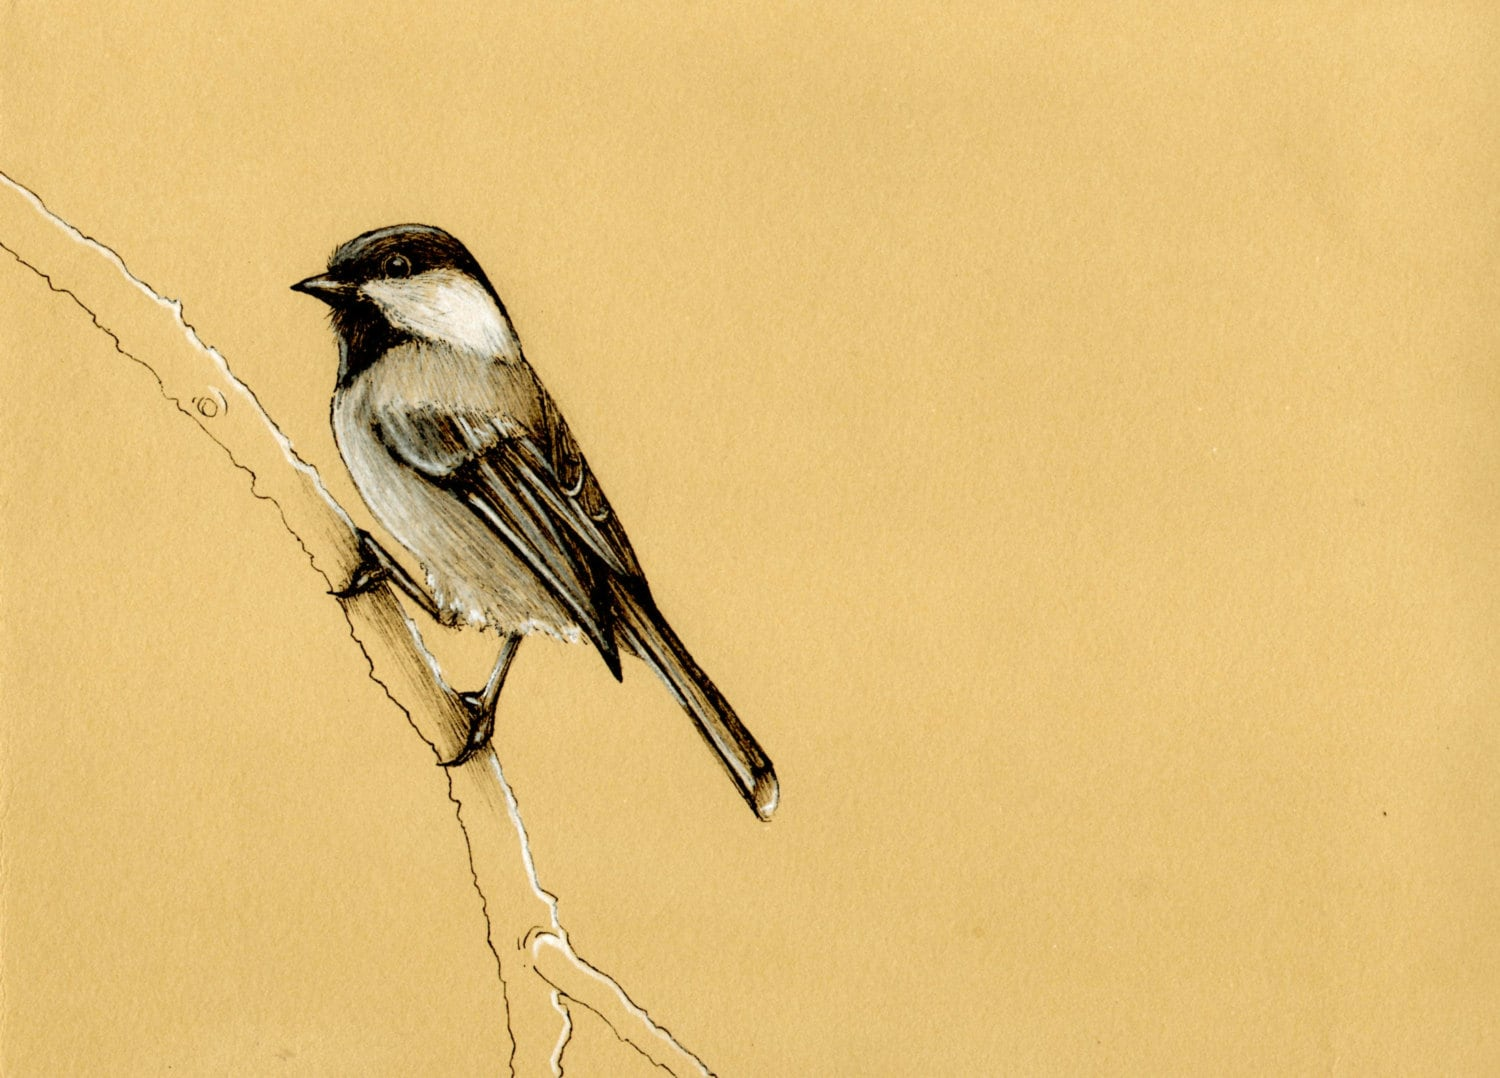 Black Capped Chickadee Drawing Black capped chickadee songbird bird    Black Capped Chickadee Drawing